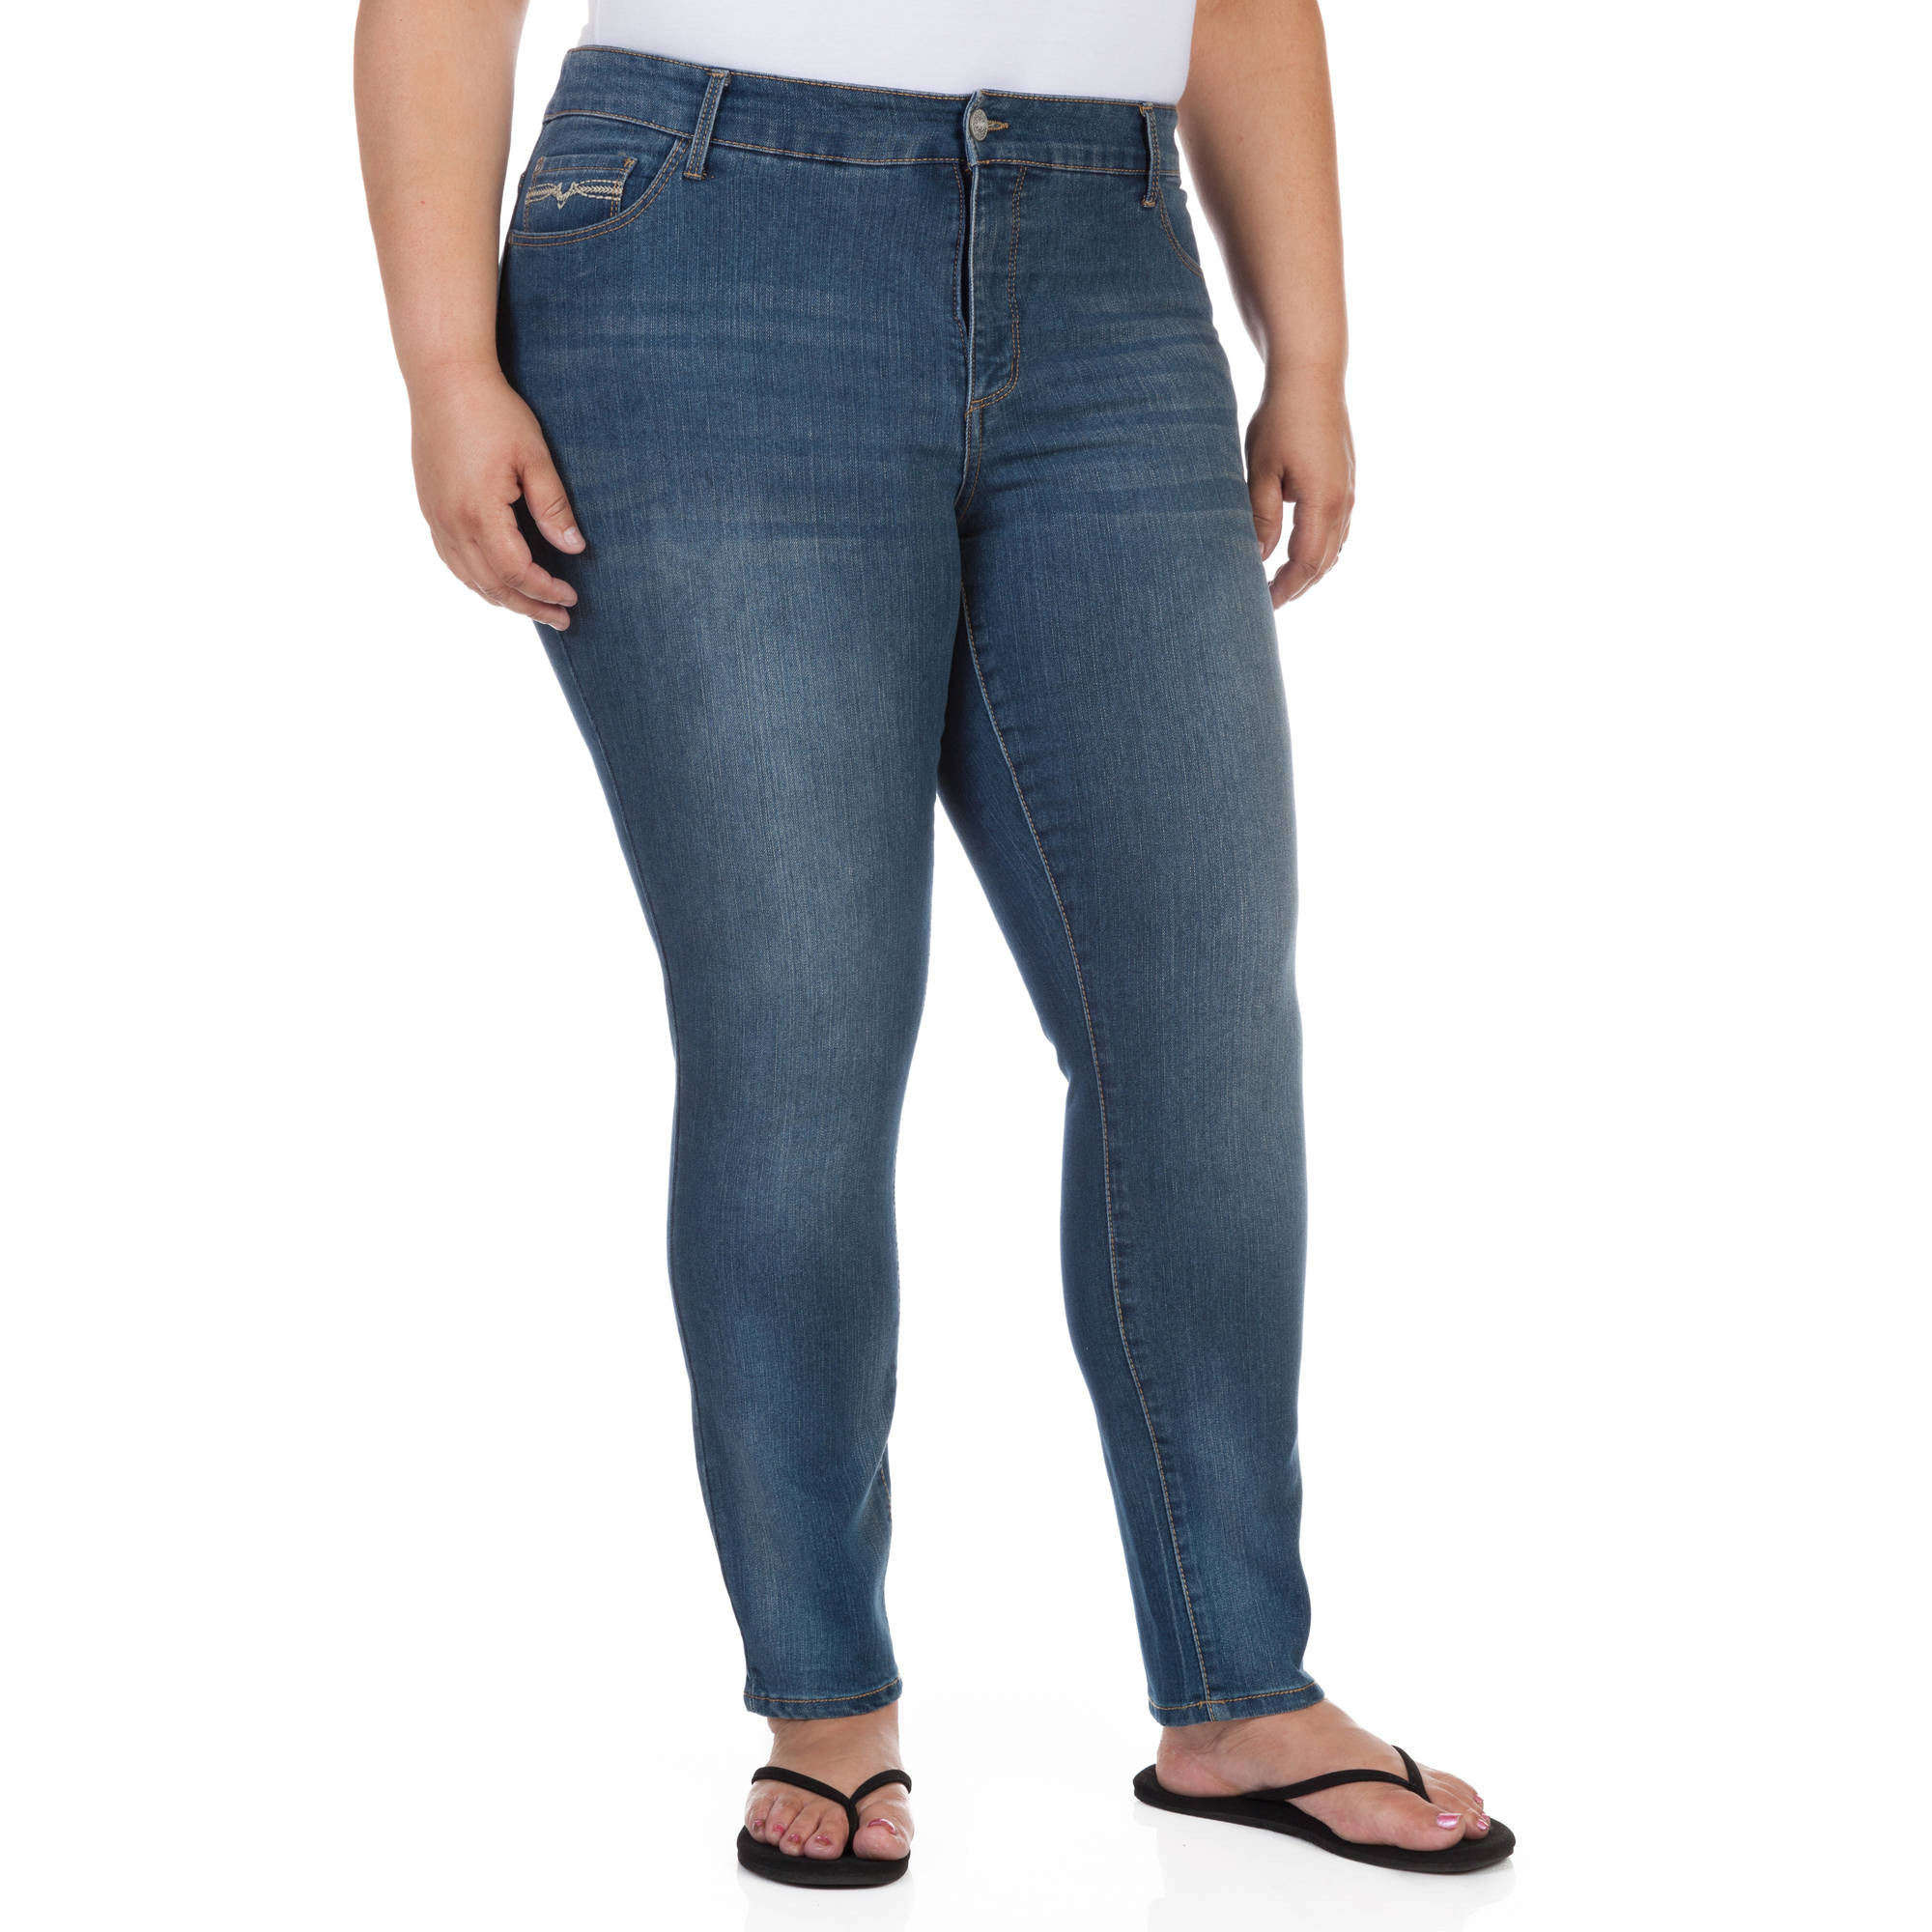 Faded Glory Women's Plus-Size Comfort Skinny Jeans - Walmart.com